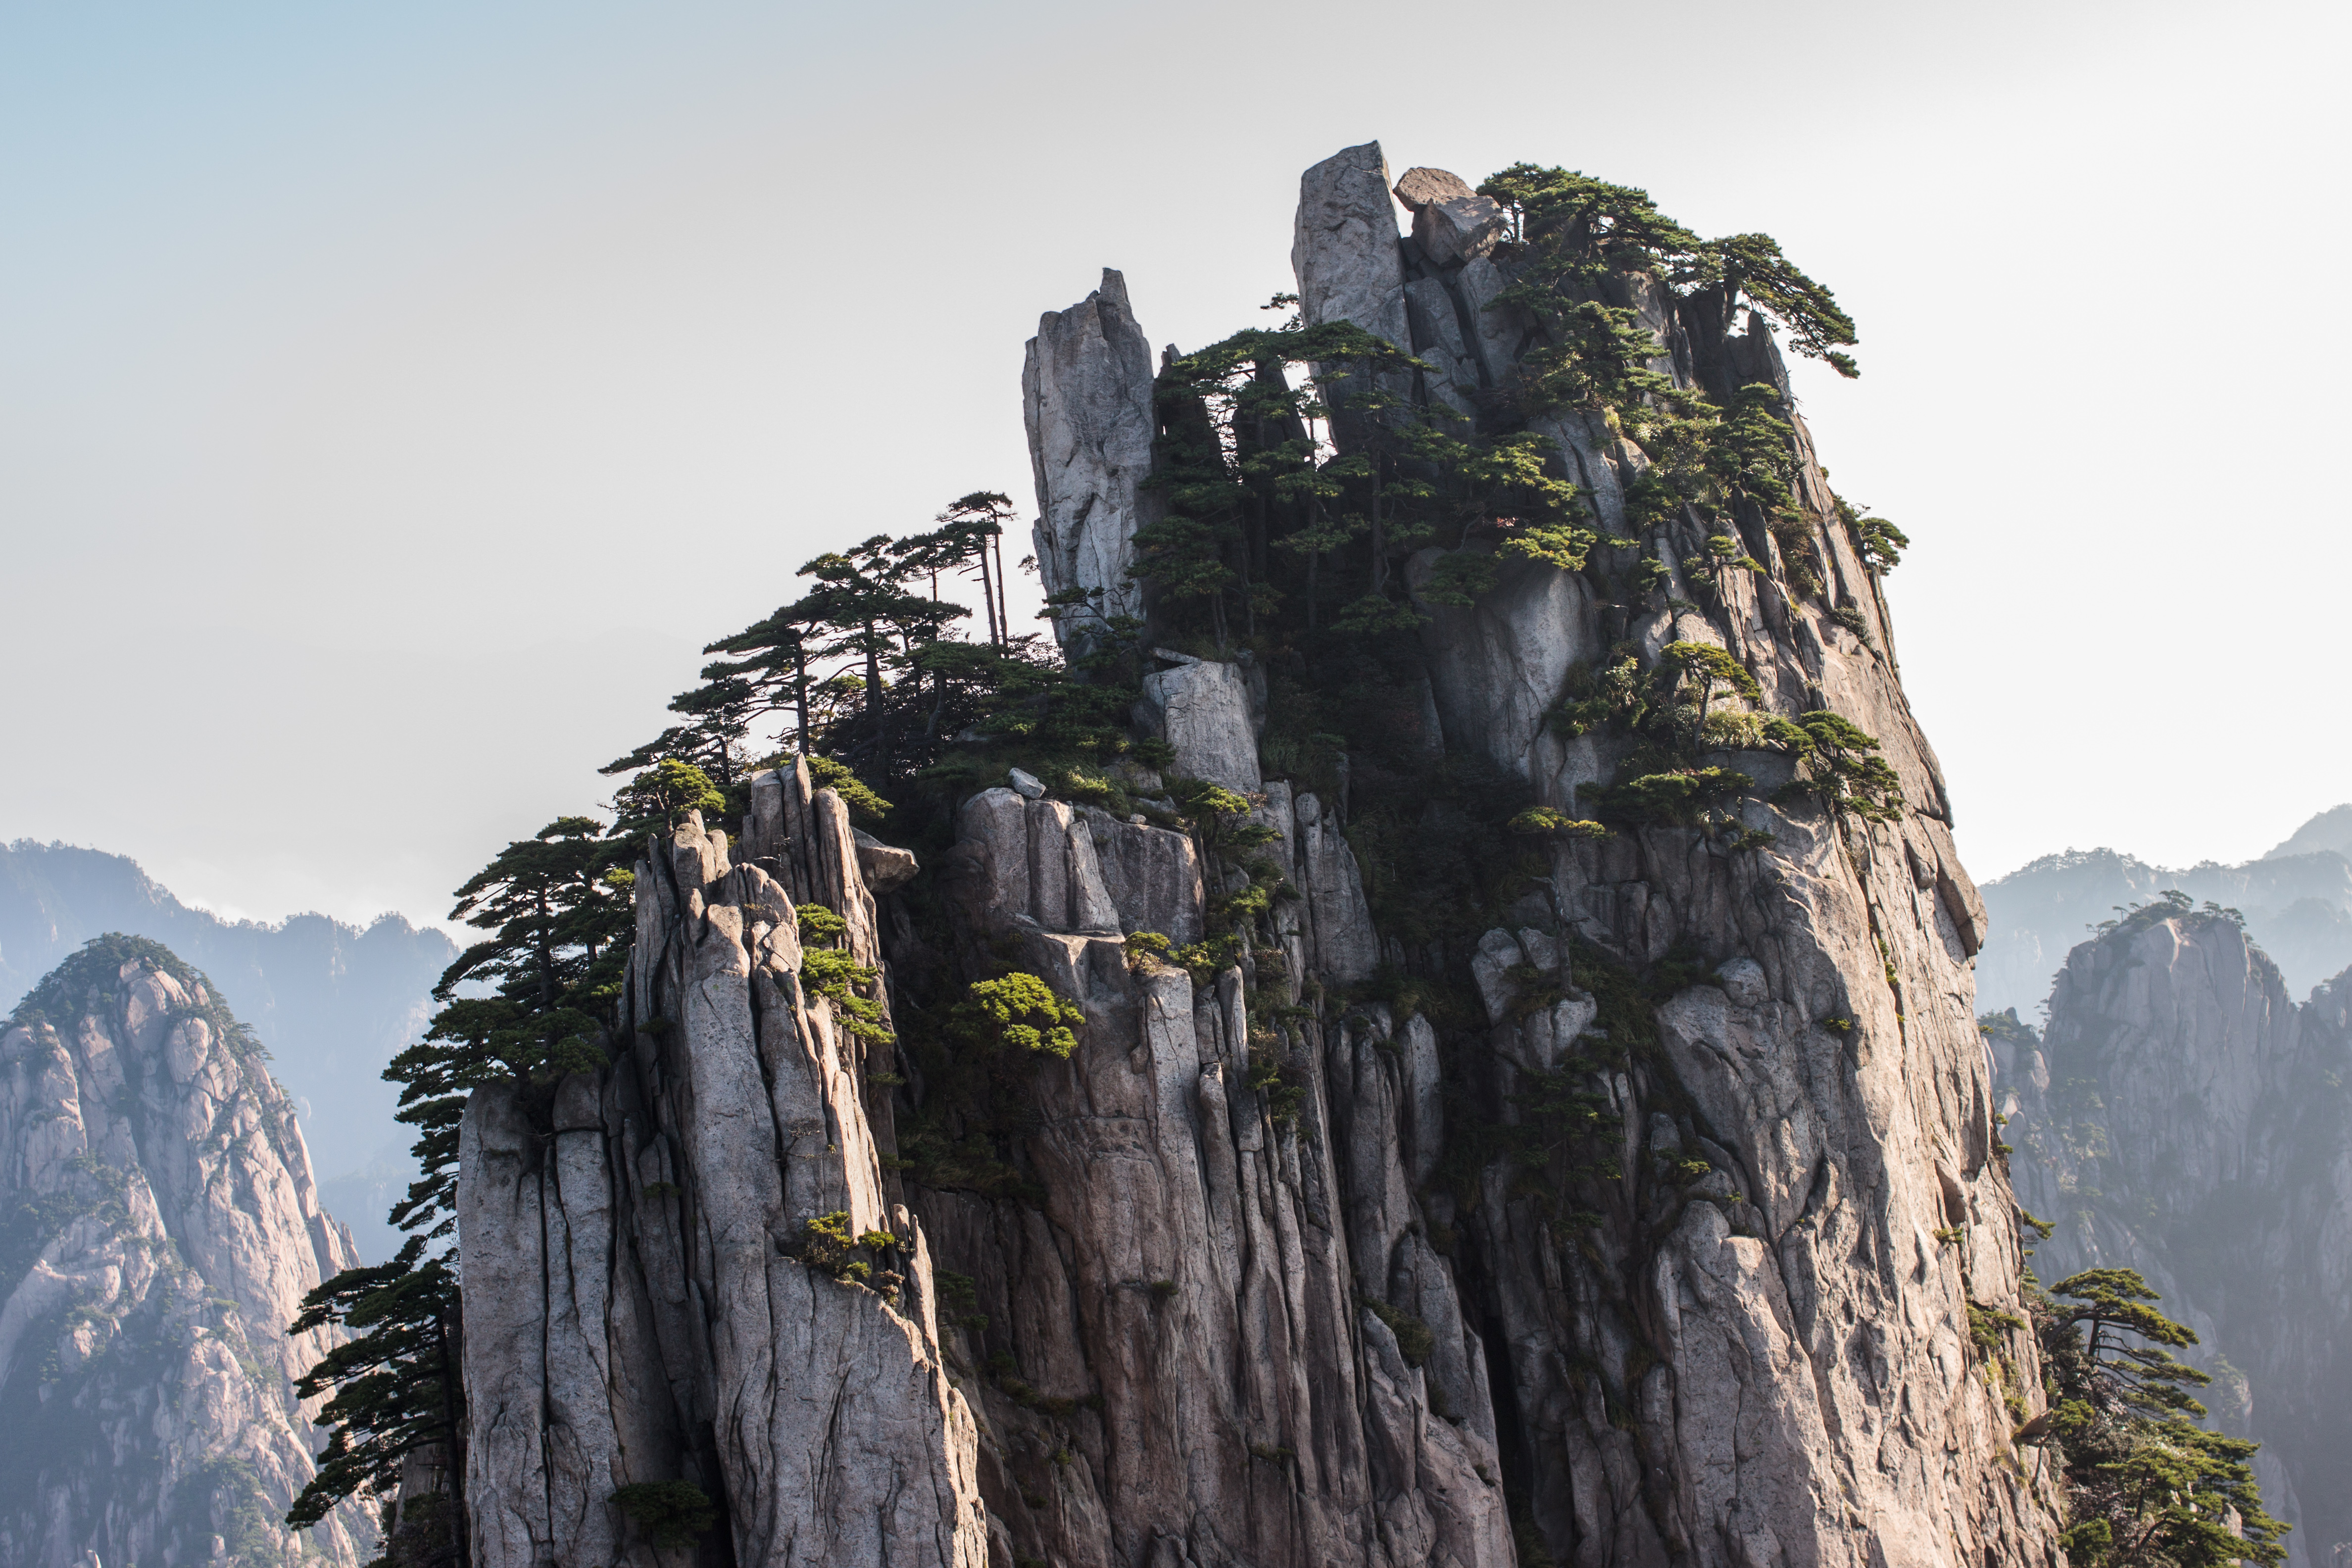 File:Sommet d'un pic - HuangShan.jpg - Wikimedia Commons